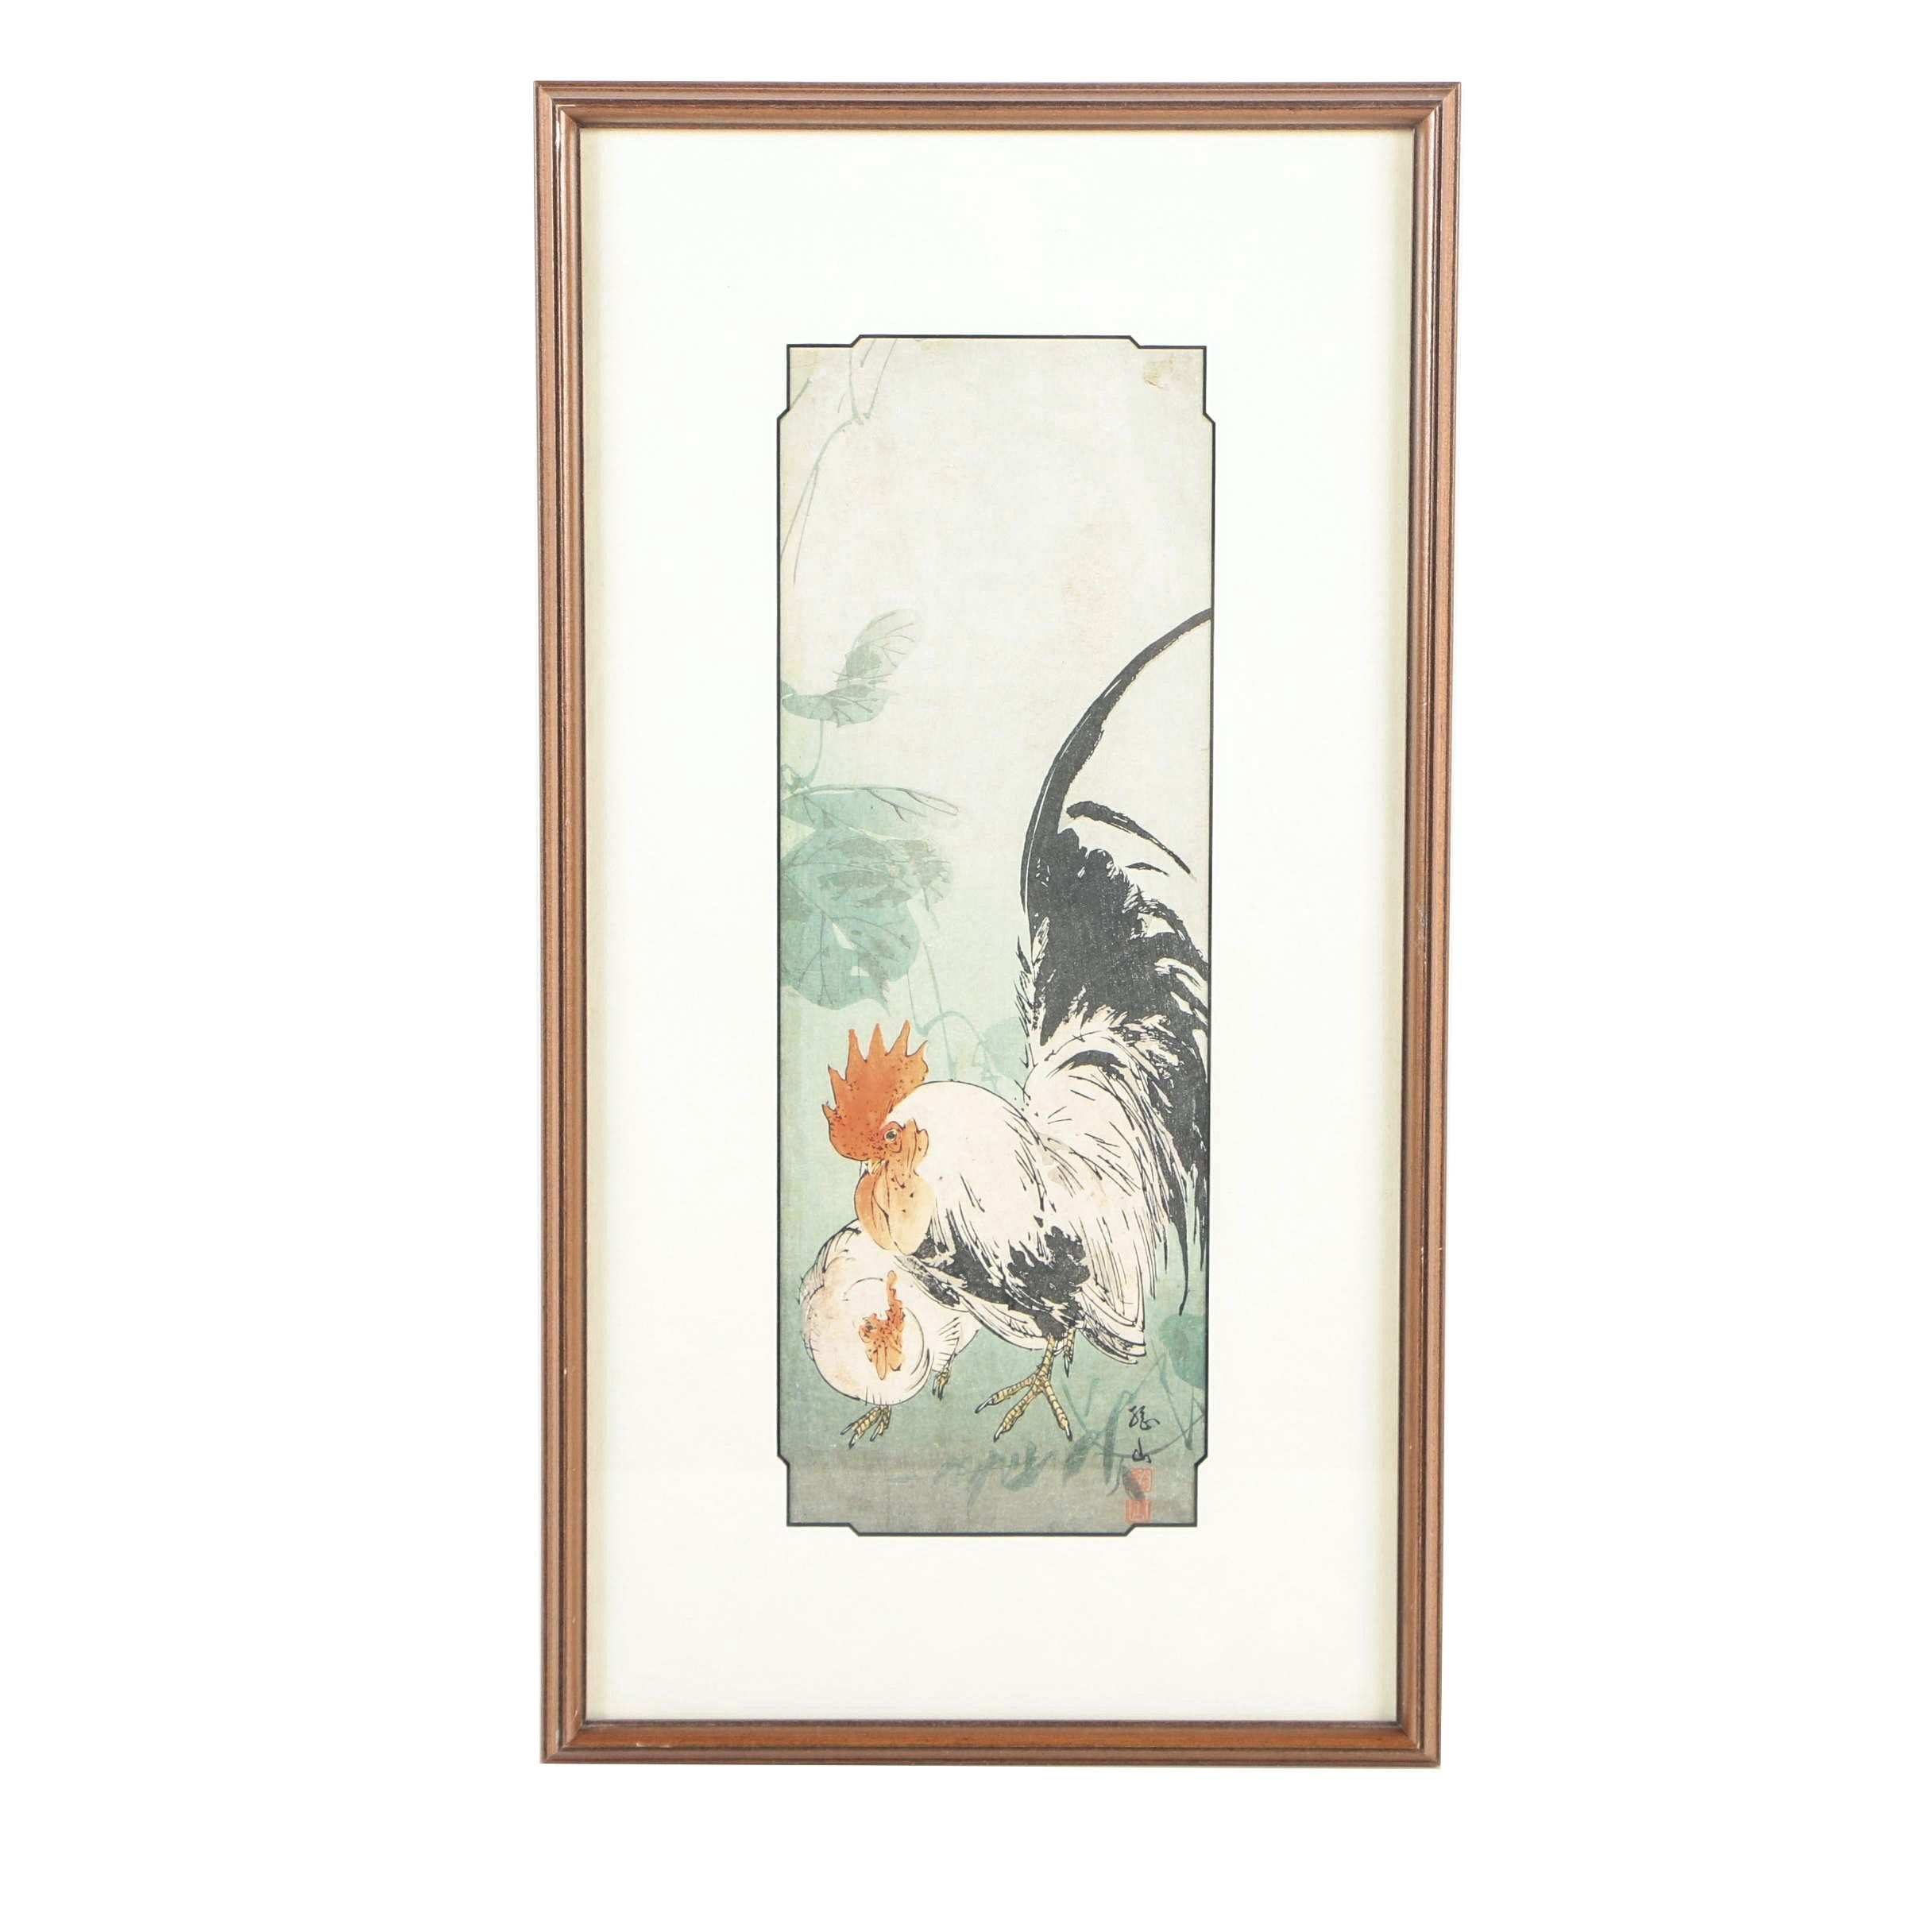 Japanese Woodblock Print of a Hen and Rooster